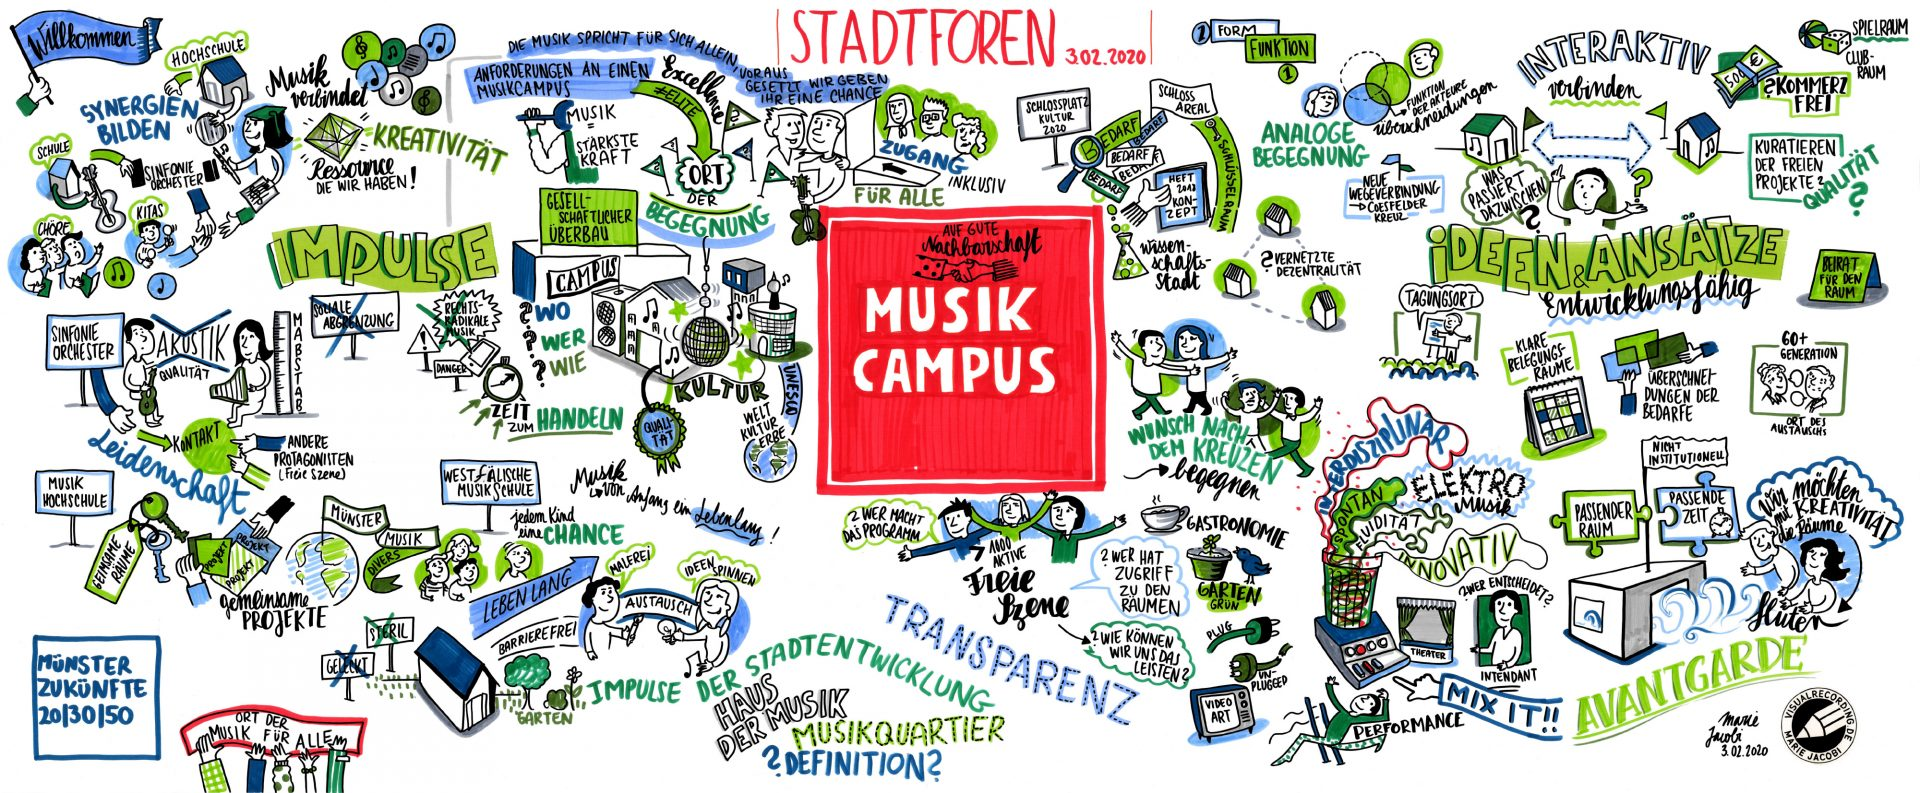 Graphic-Recording-Marie-Jacobi-Stadforum-Musik-Campus